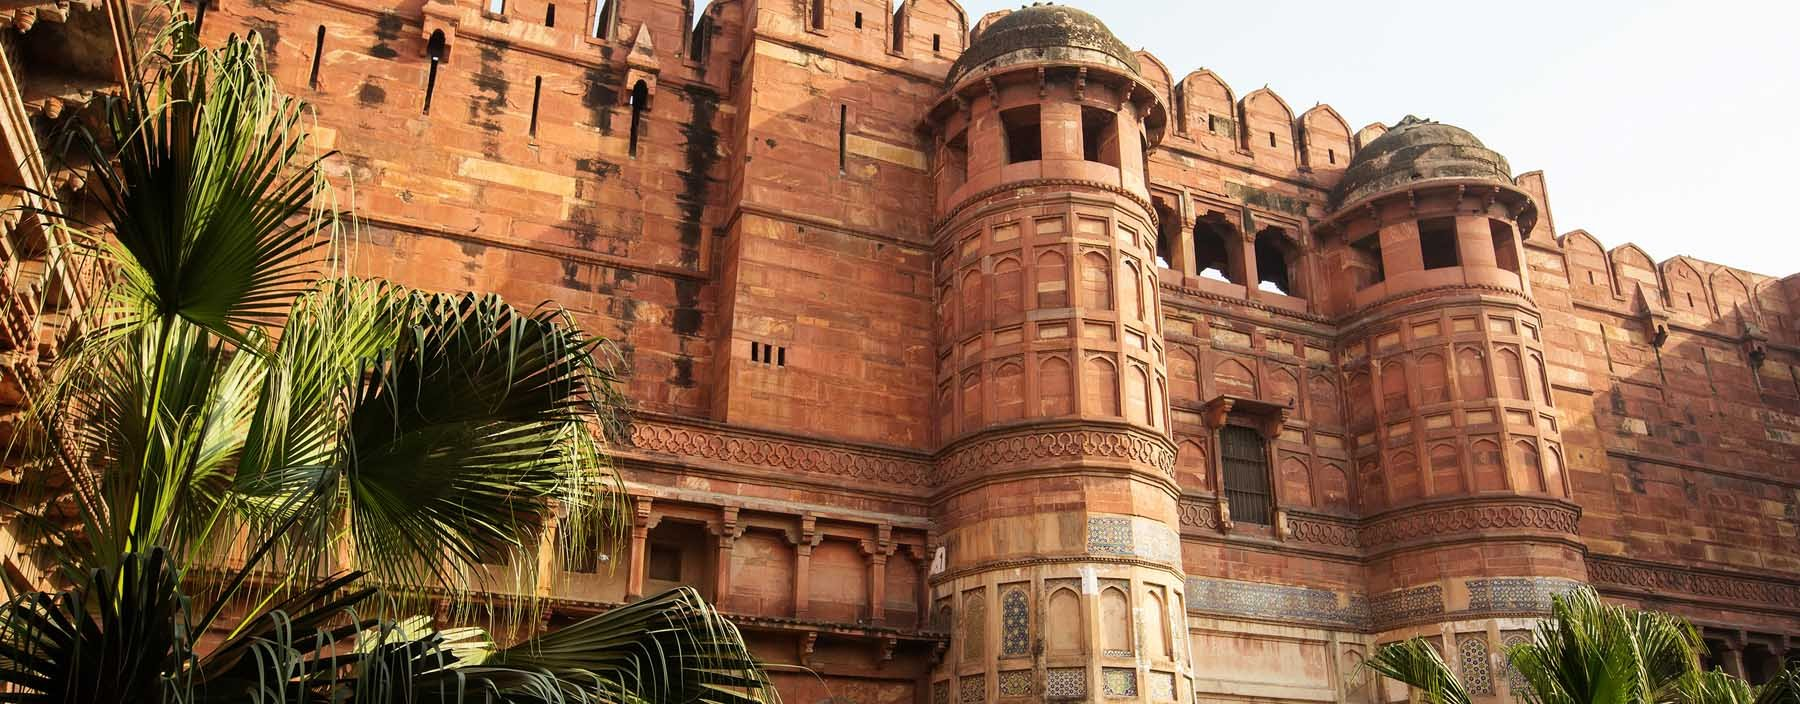 in, agra, red fort.jpg